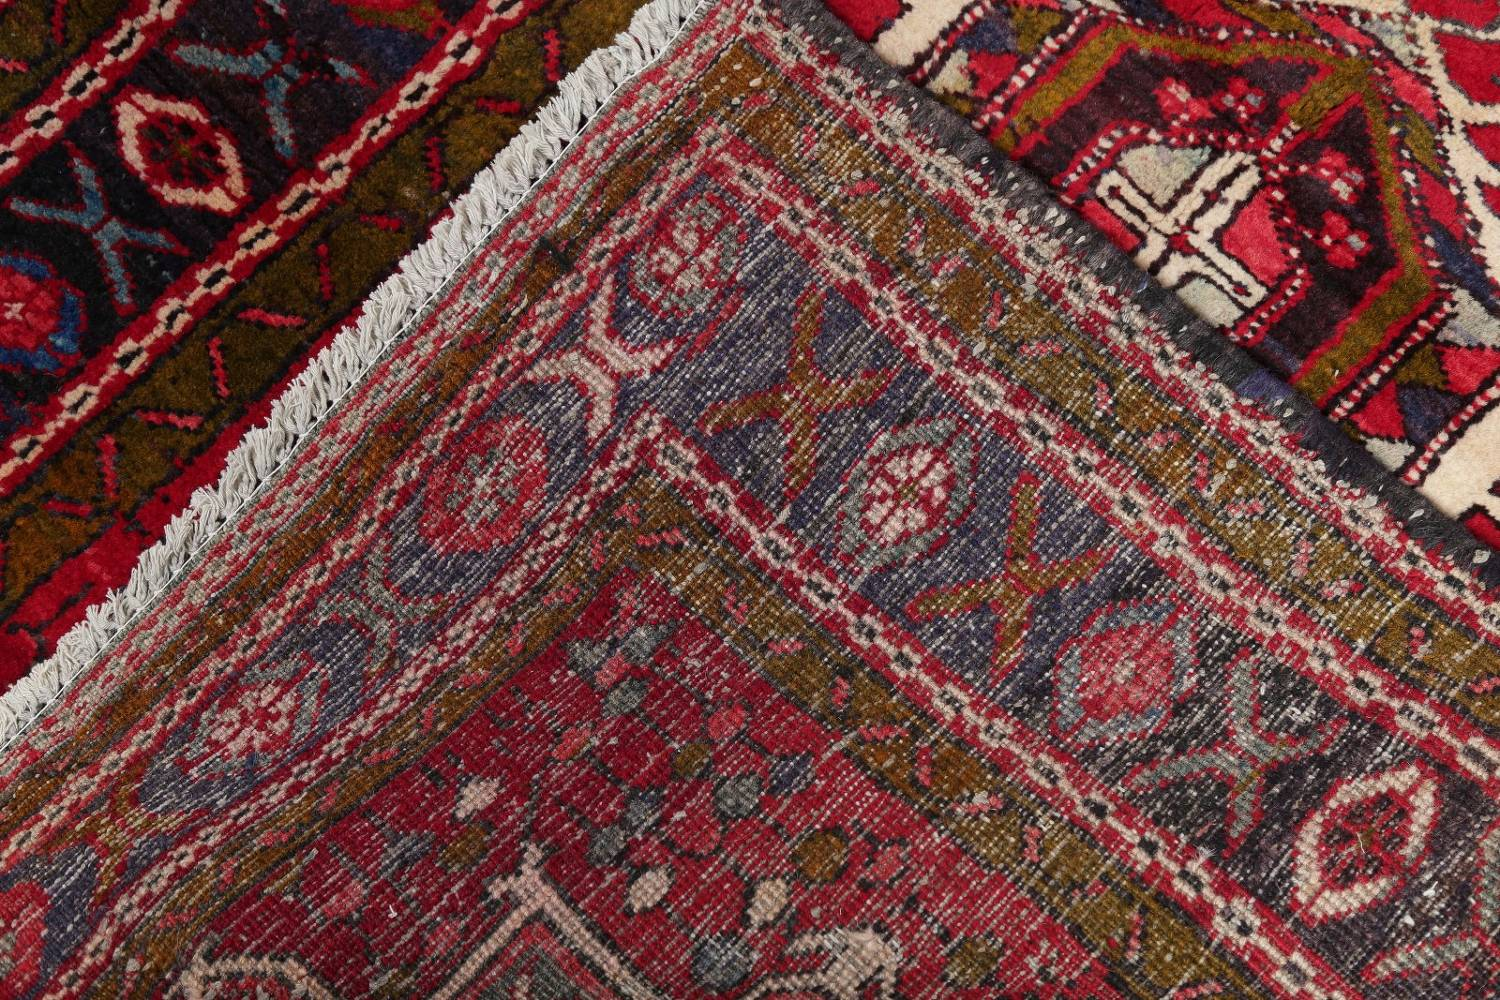 One-of-a-Kind Red Geometric Heriz Persian Hand-Knotted 4x13 Wool Runner Rug image 20